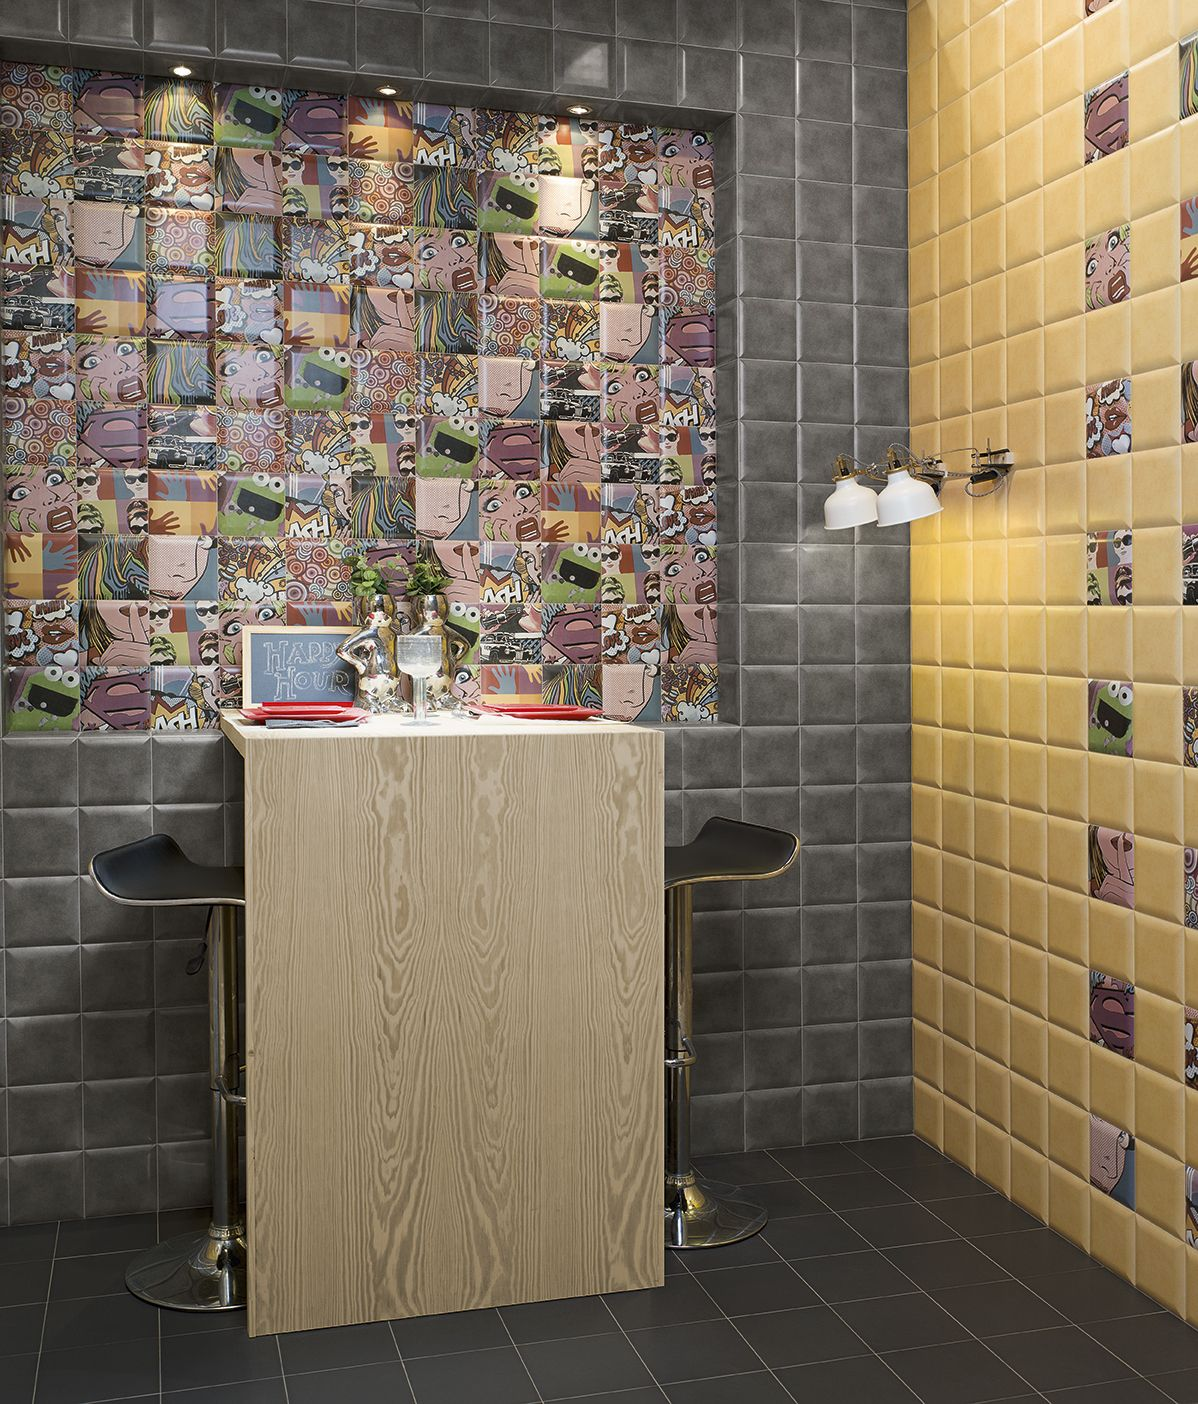 Mainzu bombato grey 15x15 cm pt02294 euro gray and tile design looking for new double fired tiles diamonds pop art effect wall tiles for your bathroom on youll find mainzu bombato grey cm at the best price dailygadgetfo Choice Image